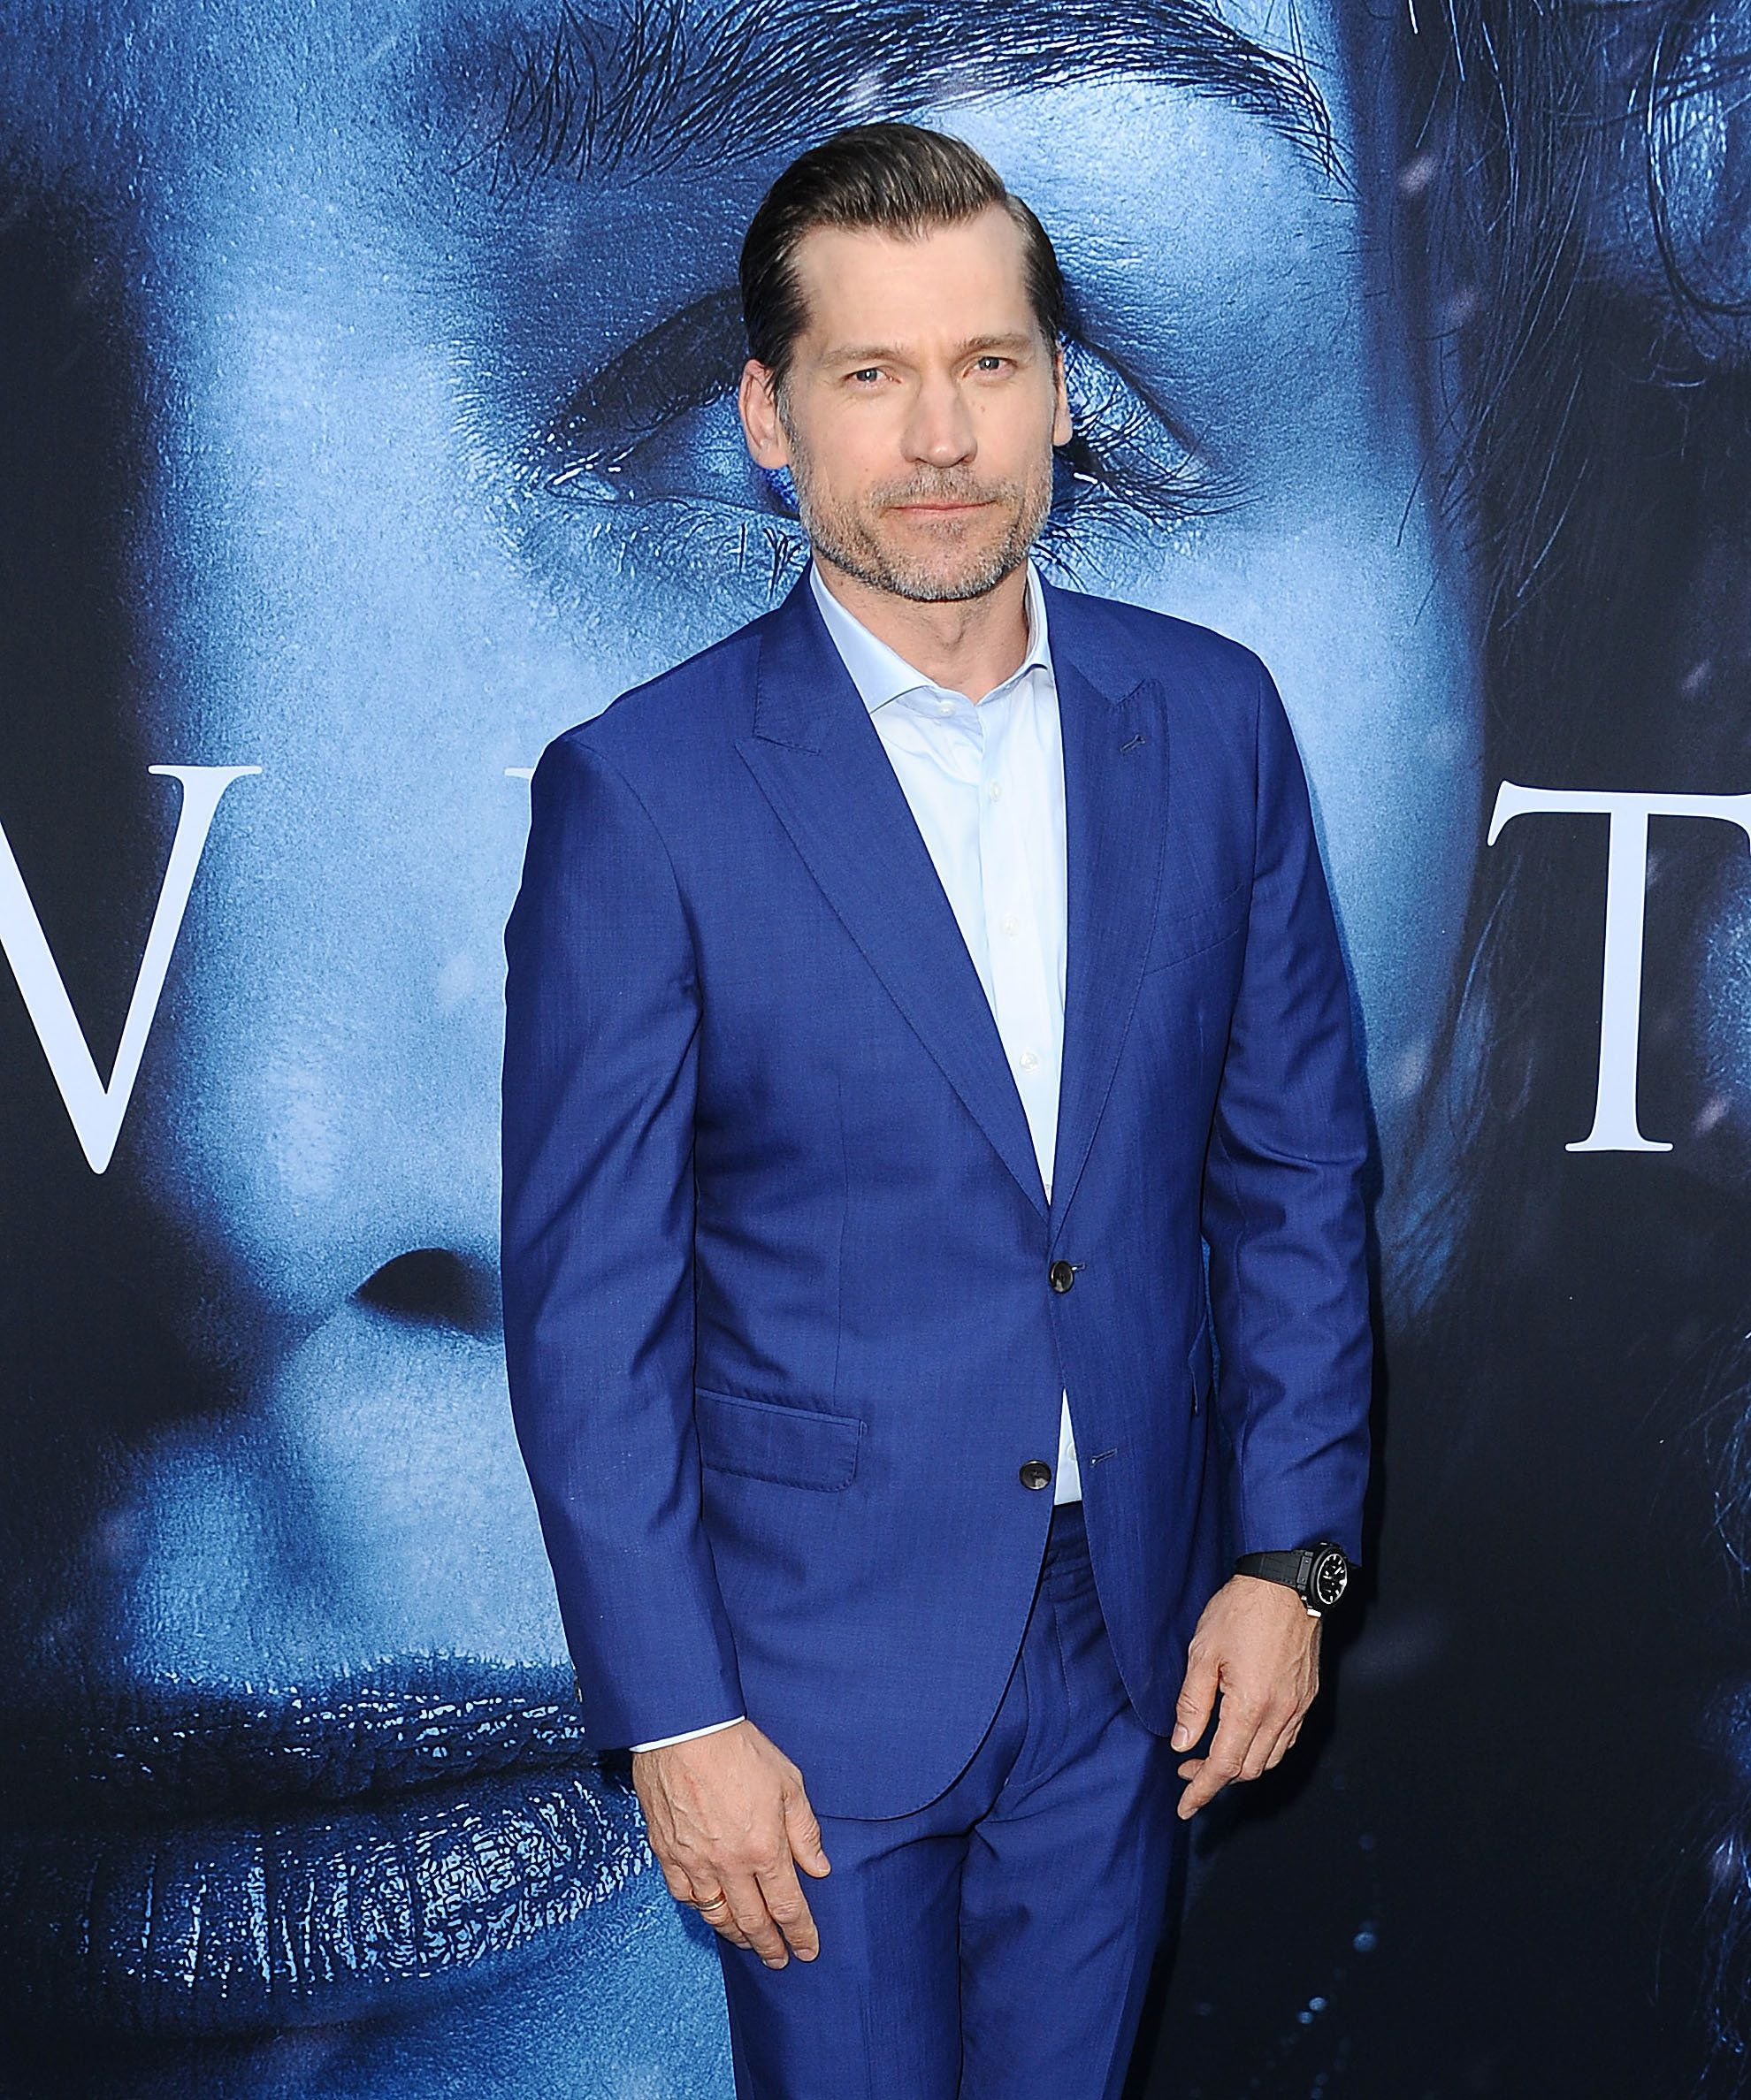 'GOT' actor Nikolaj Coster Waldau sues ex-manager for fraud